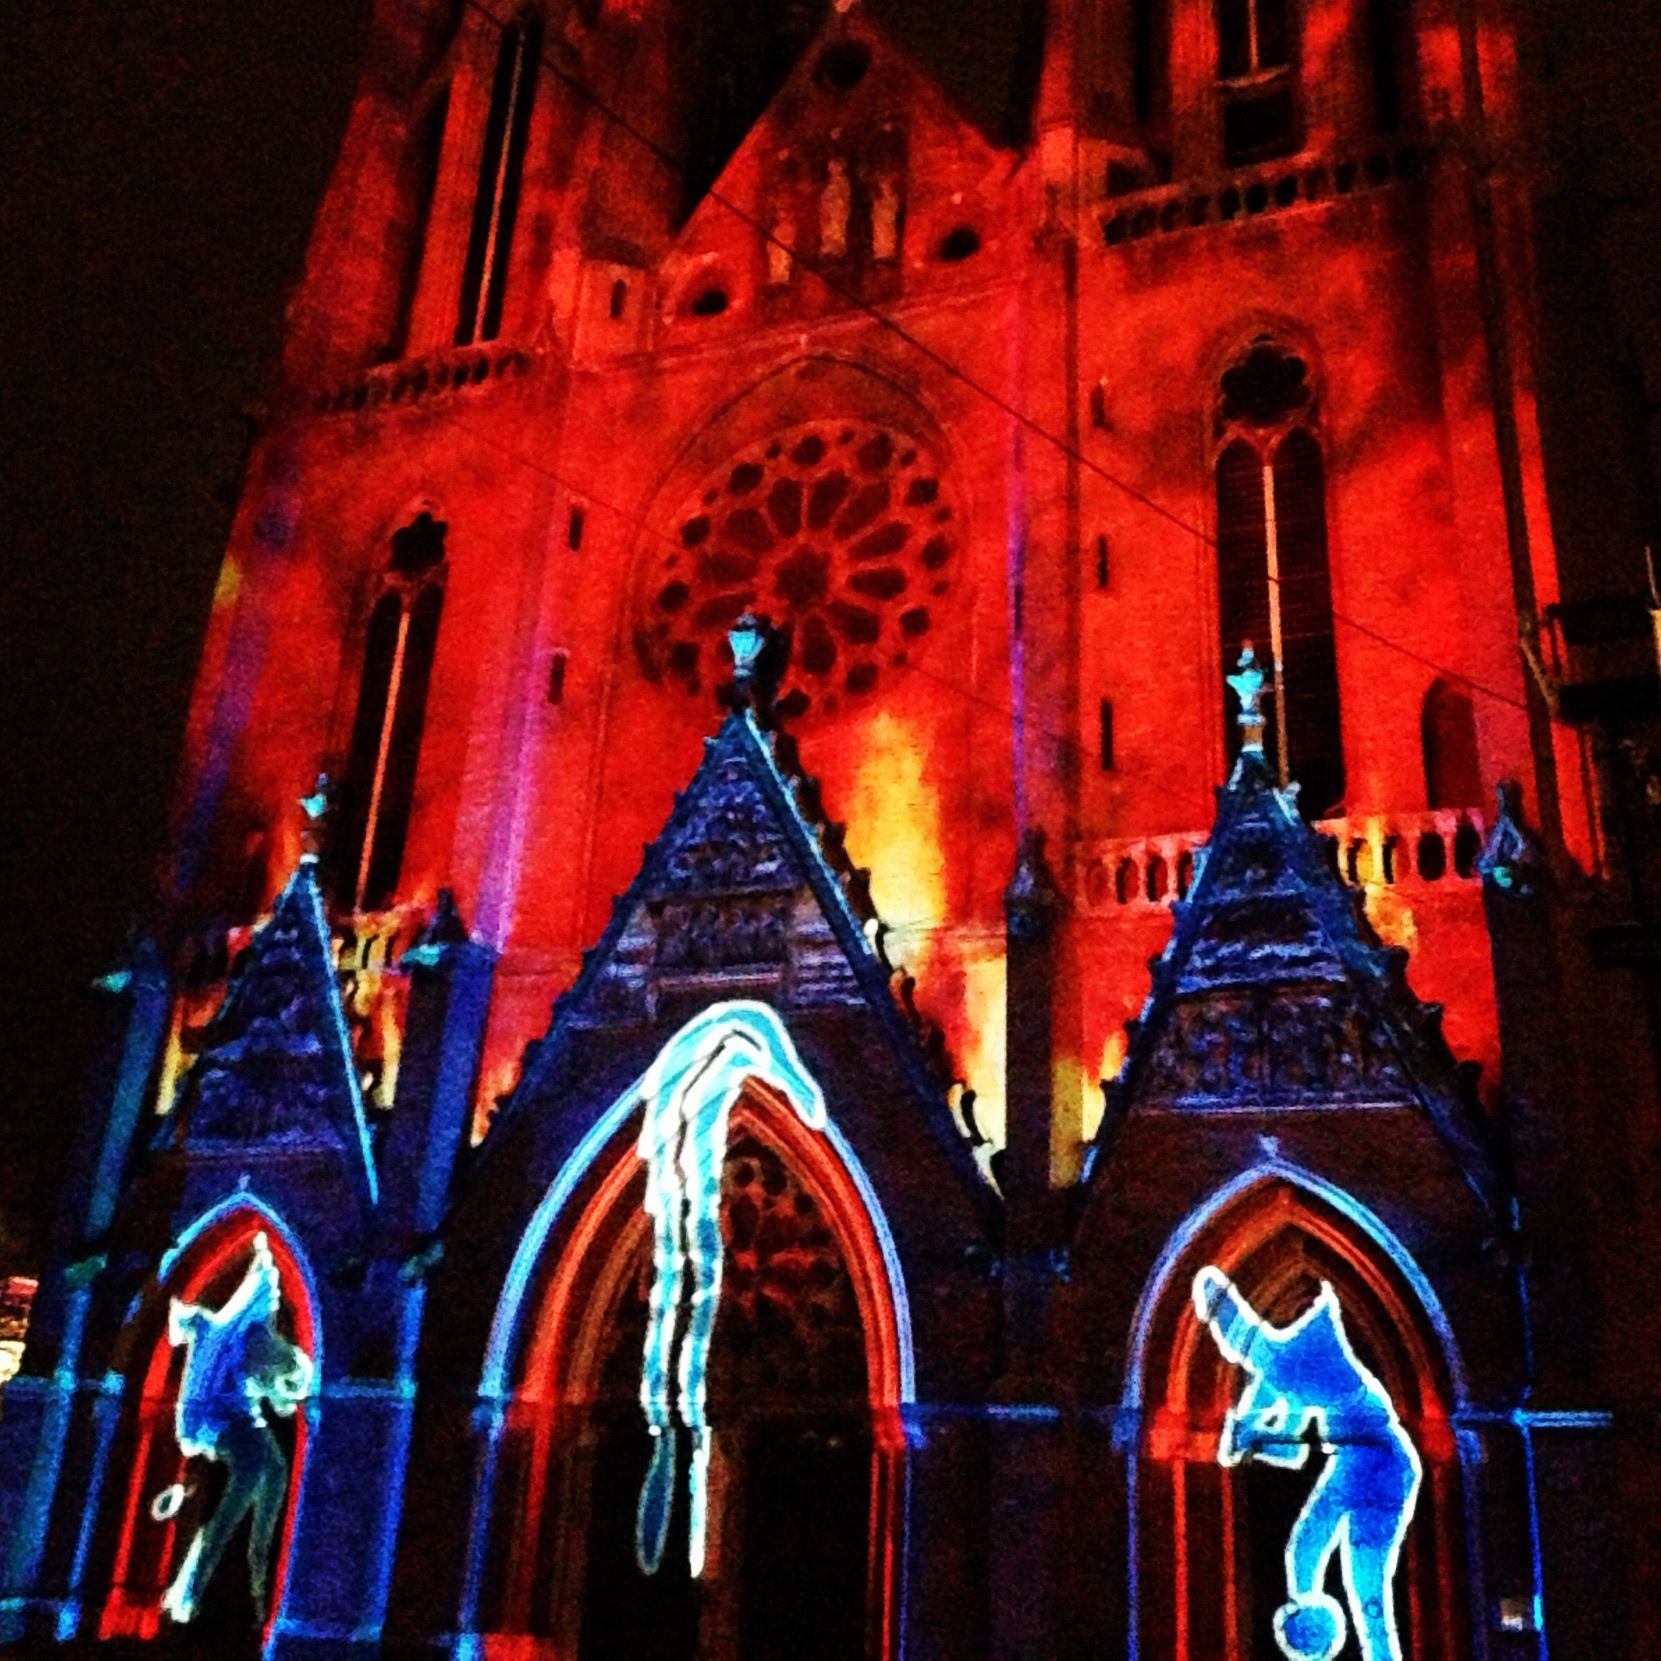 Glow 2012. A festival of light! Great sceneries in the city!